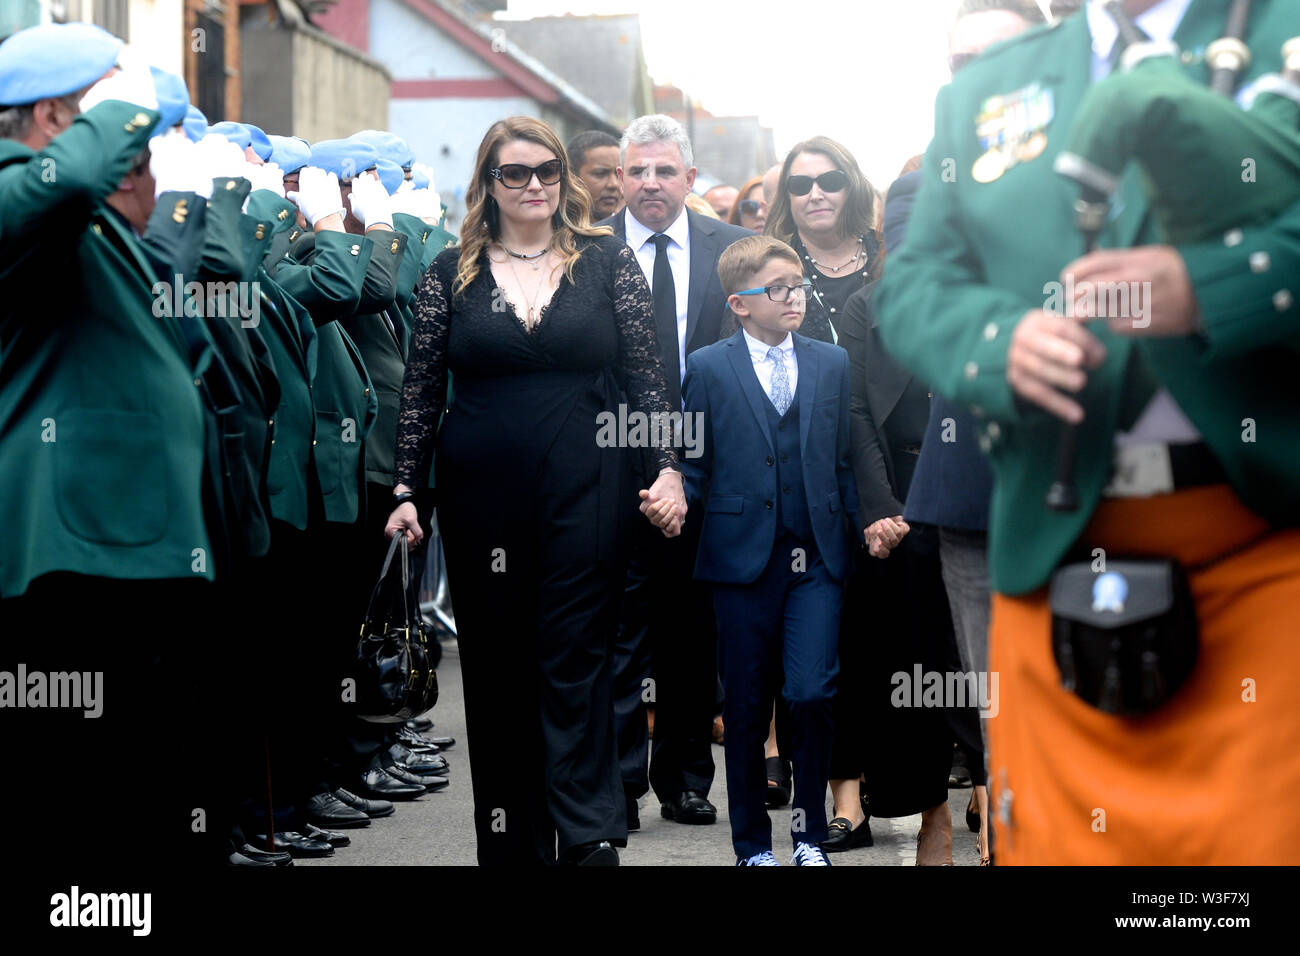 Family members at the funeral of Father Ted star Brendan Grace at the Church of St. Nicholas of Myra, Dublin. - Stock Image